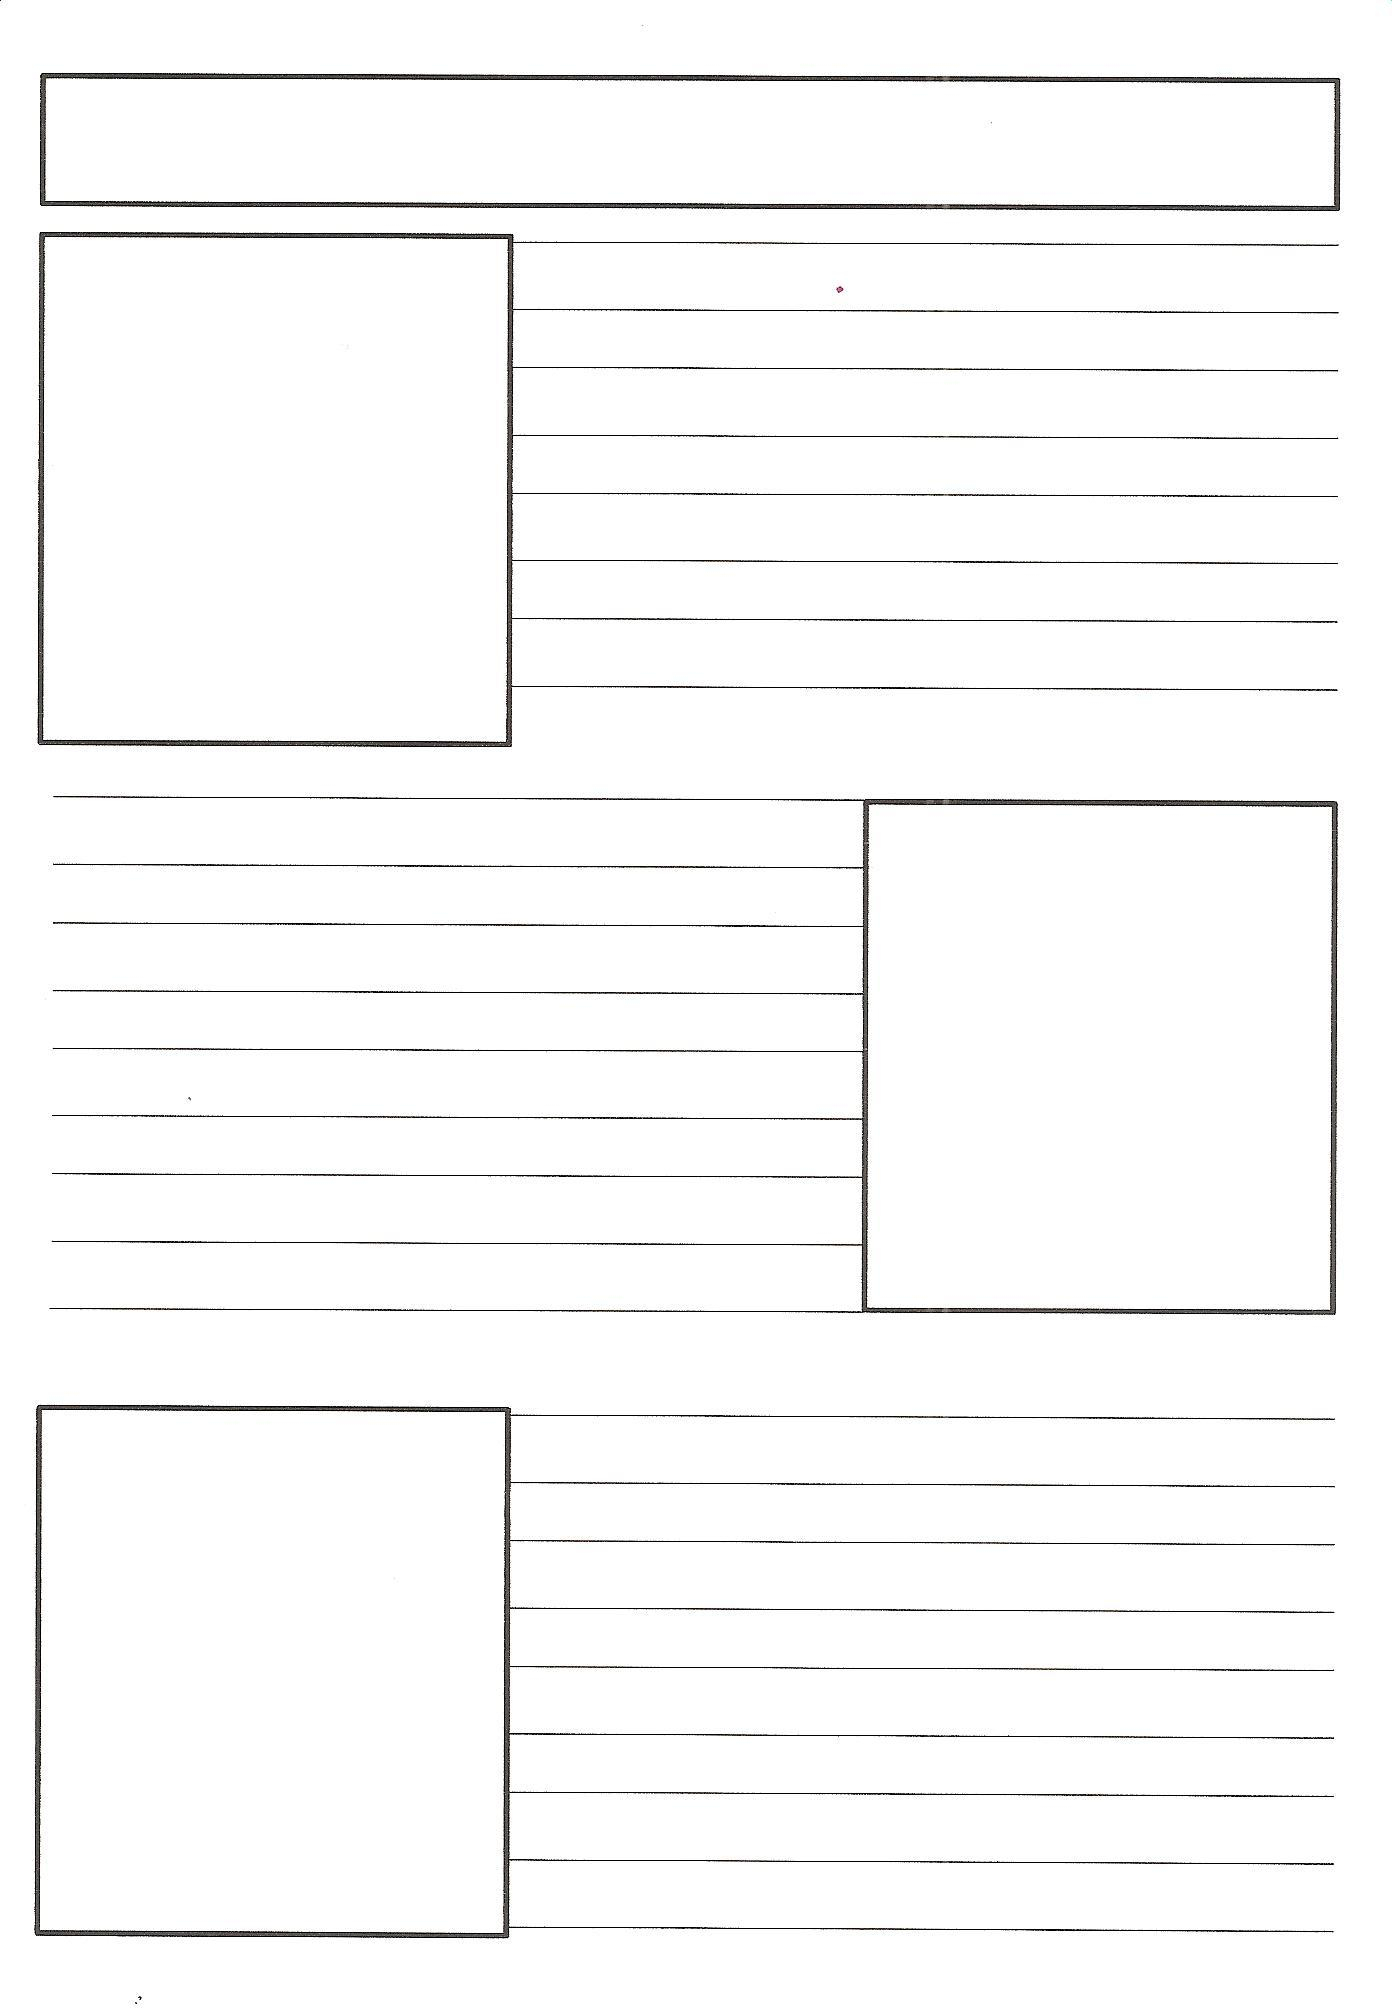 Free Printable Newspaper Article Template – Jowo - Free Printable Newspaper Templates For Students